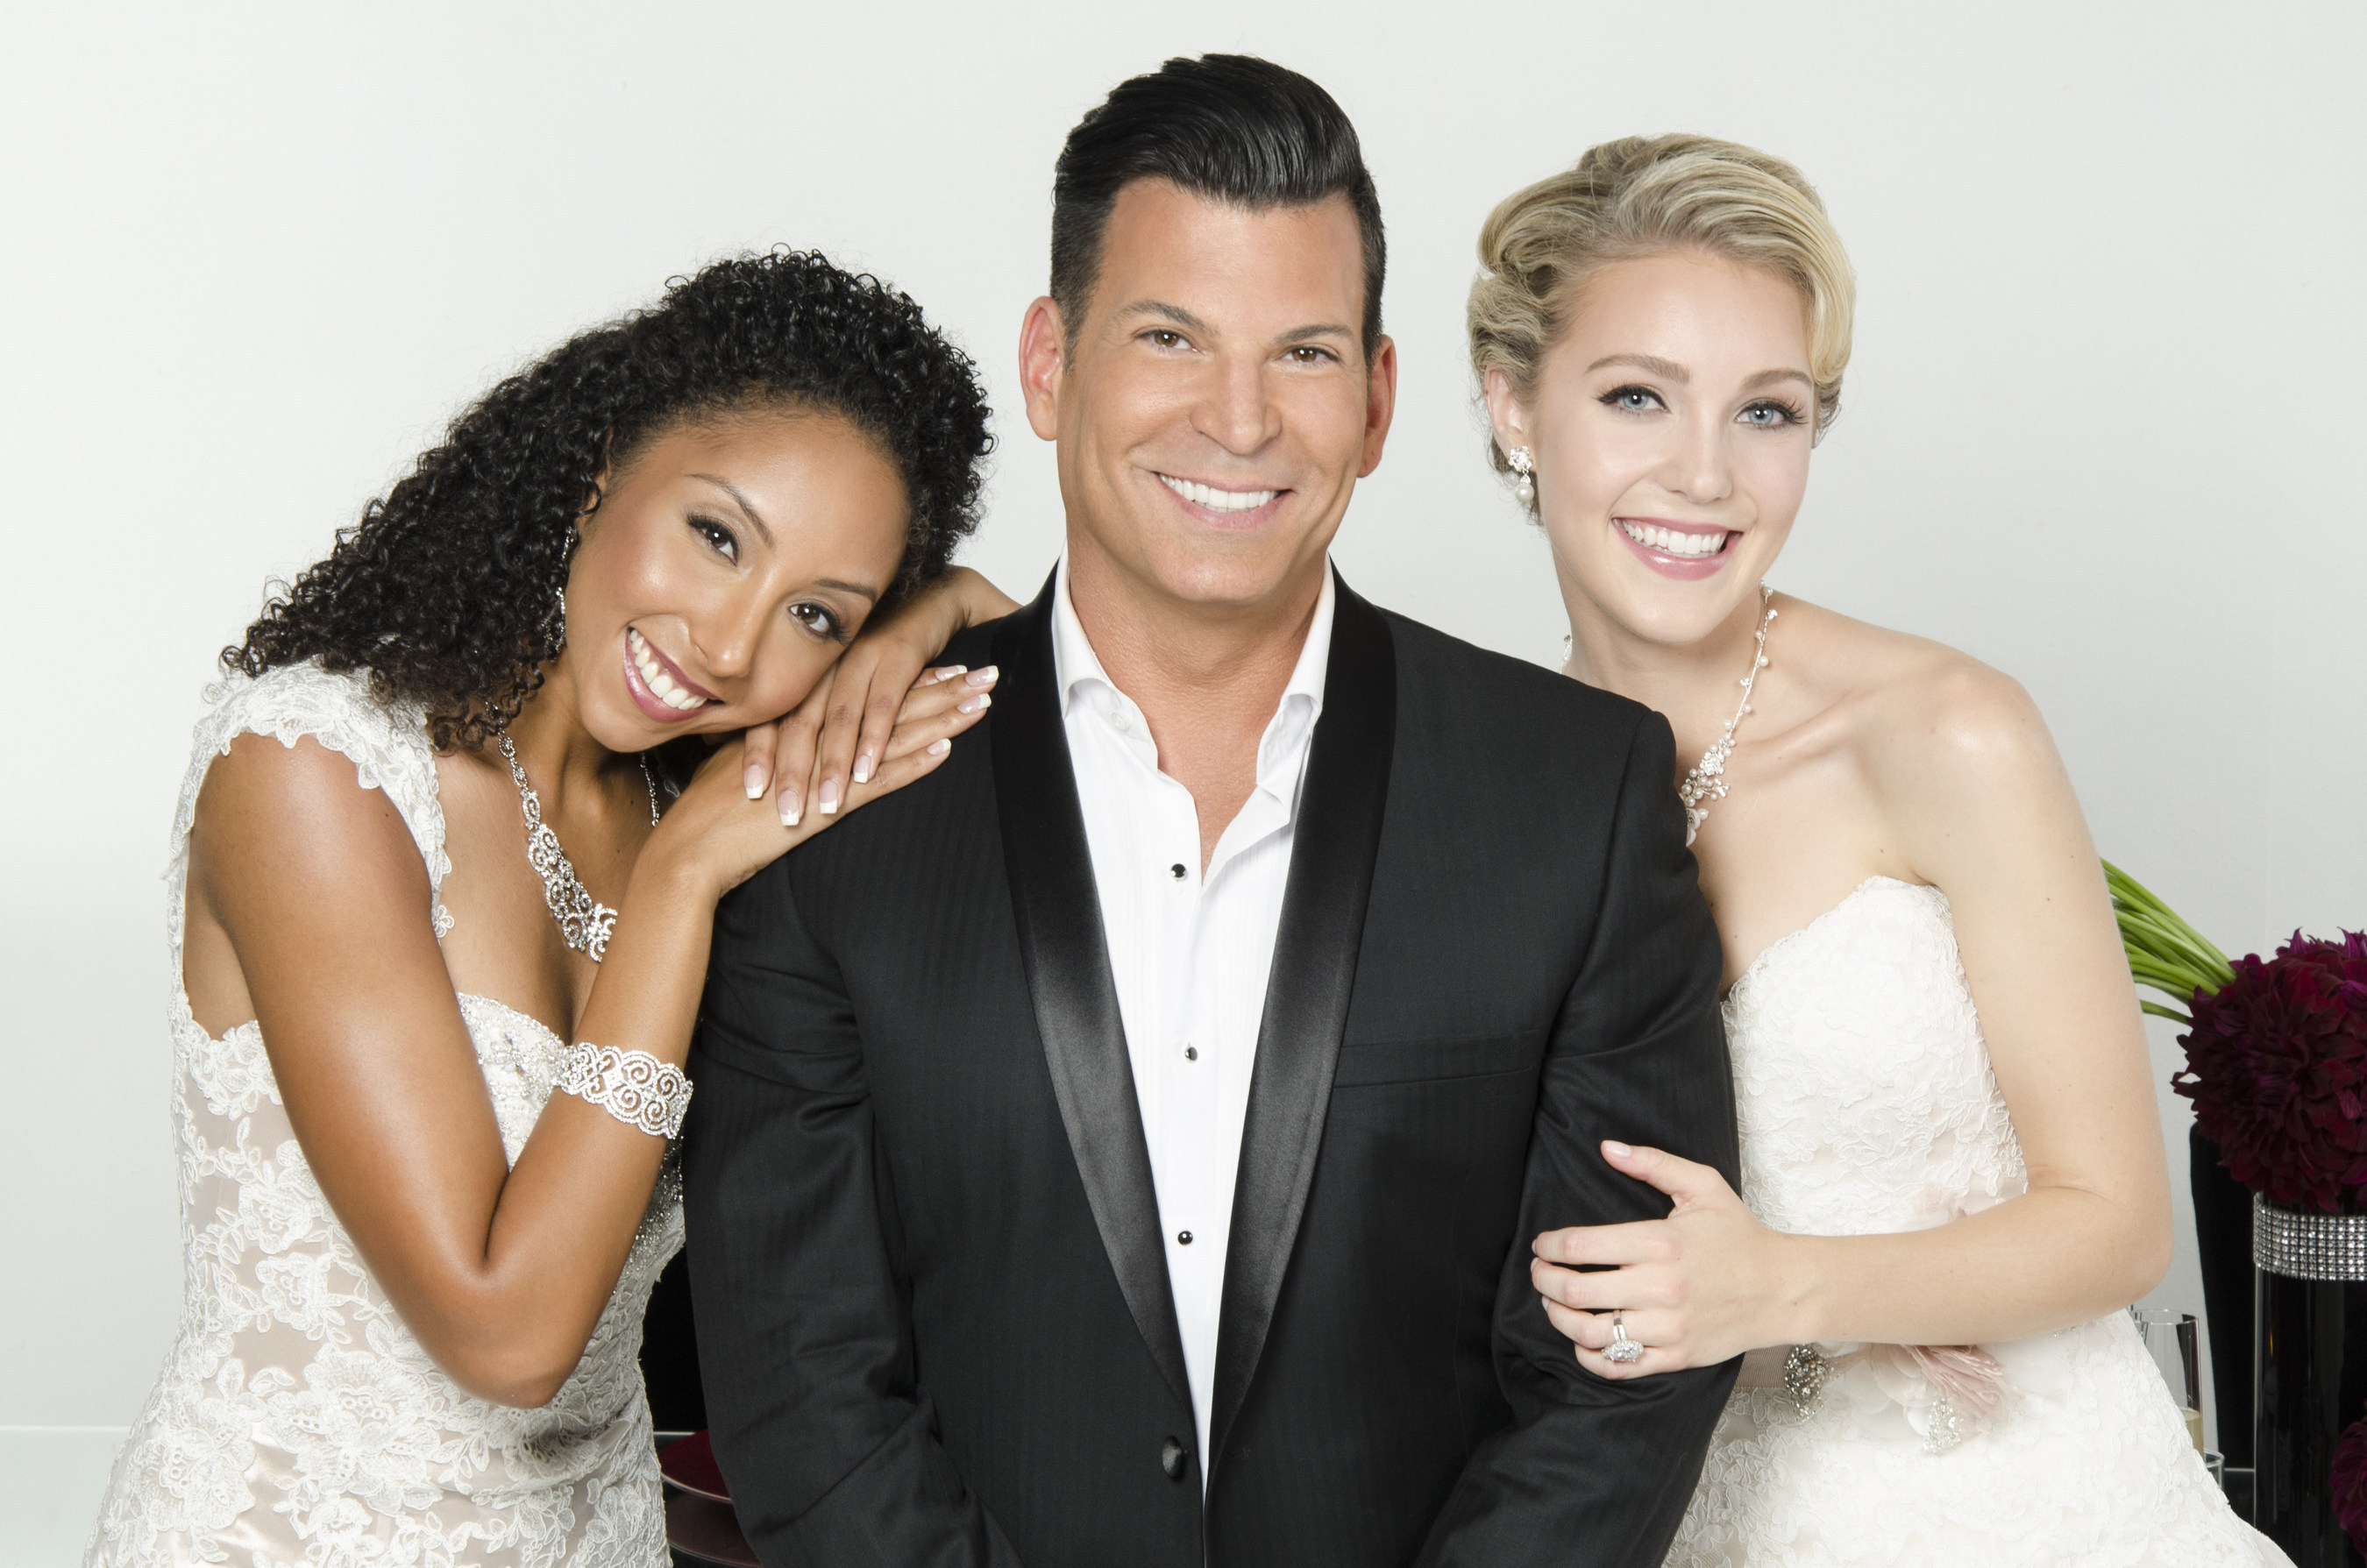 Celebrity Wedding Planner Tv Host David Tutera Announces Your Experience Multi